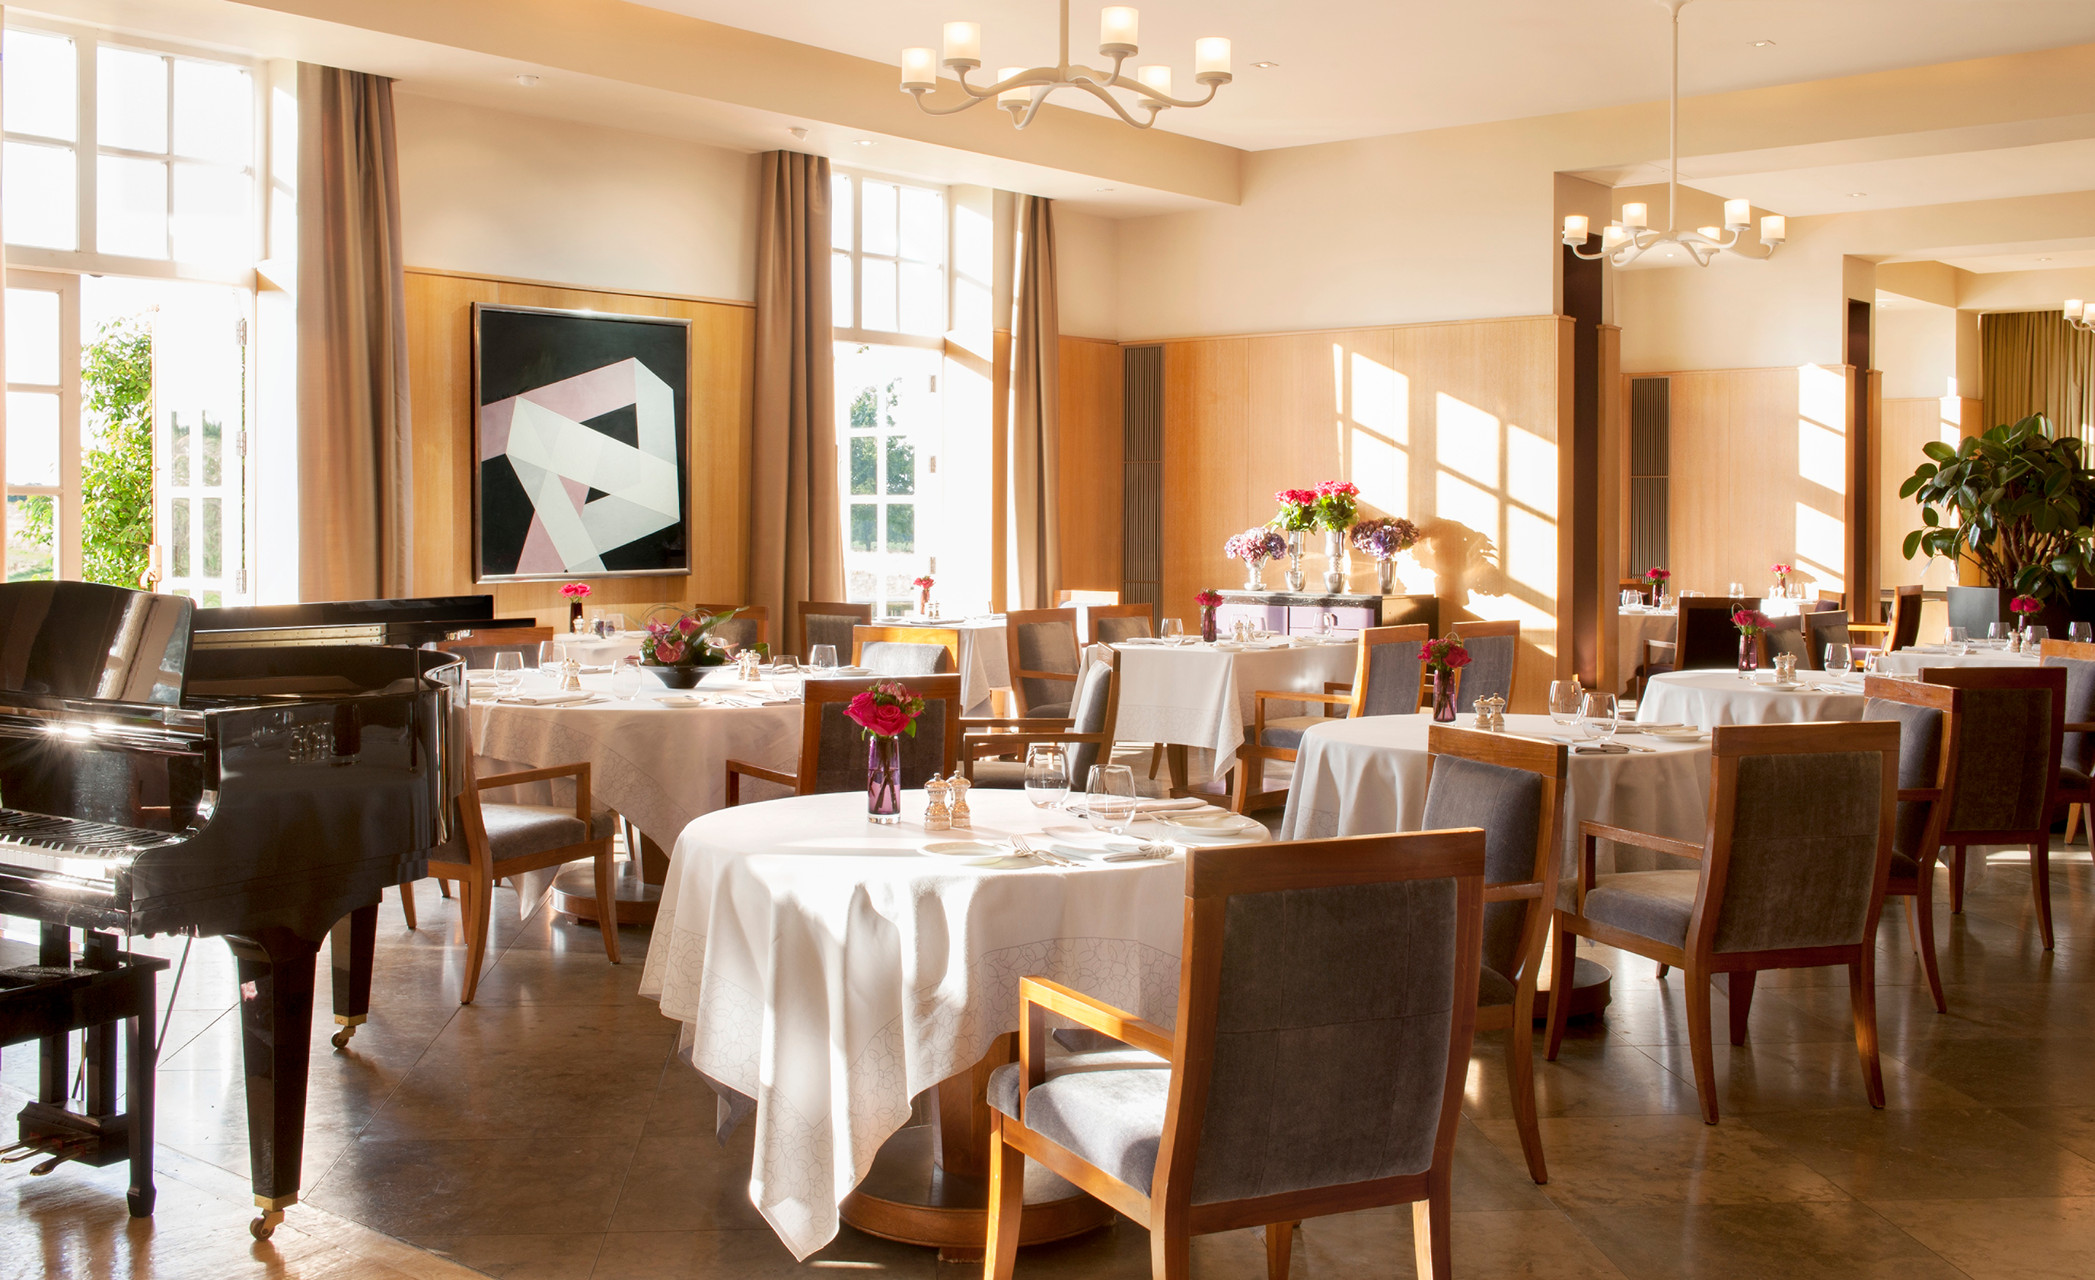 Go FiSH at Four Seasons Hotel - Hampshire